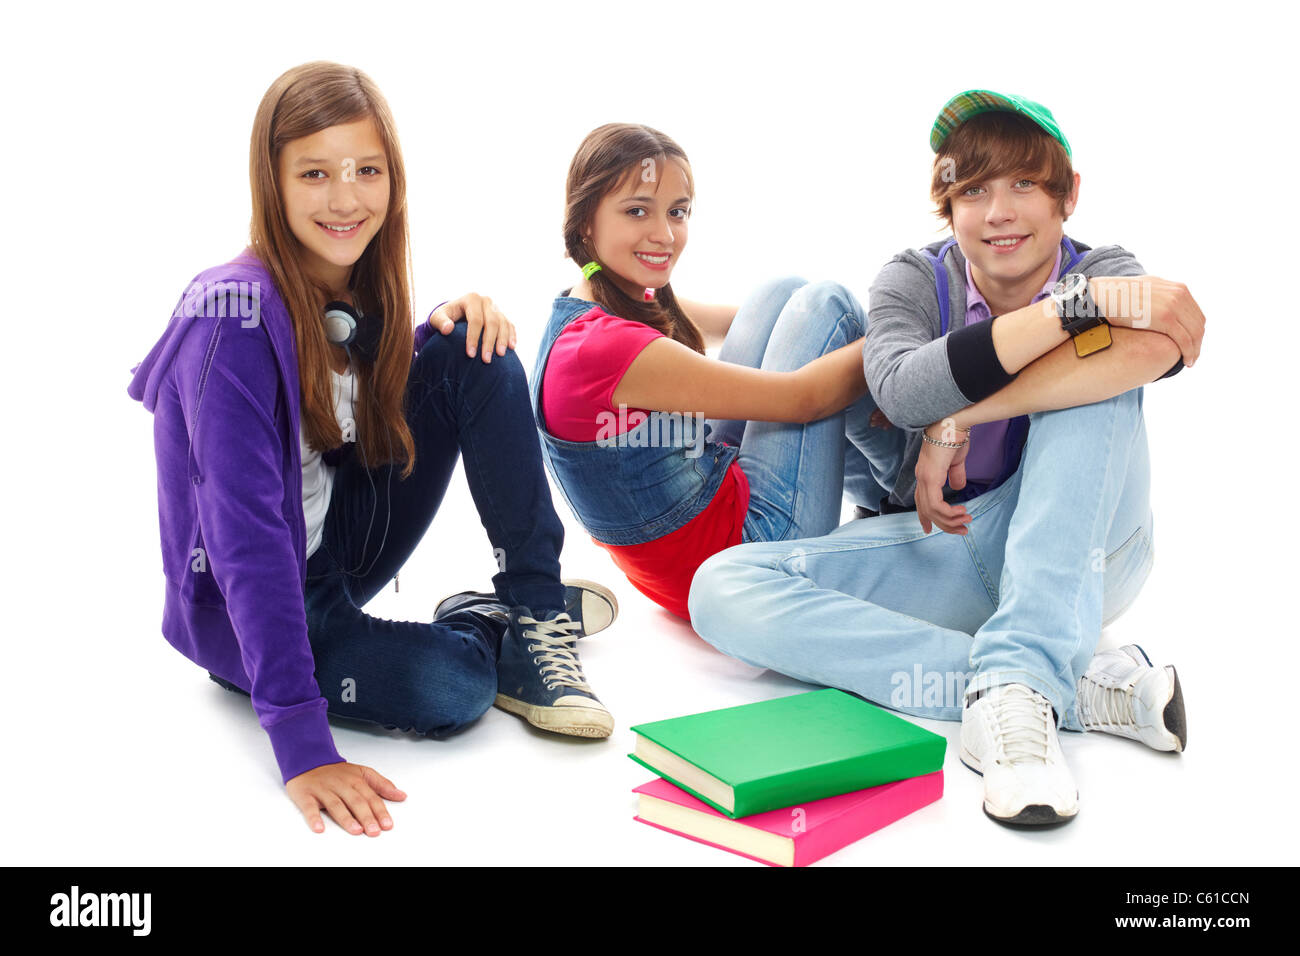 Three teenagers in casual clothes sitting in isolation - Stock Image